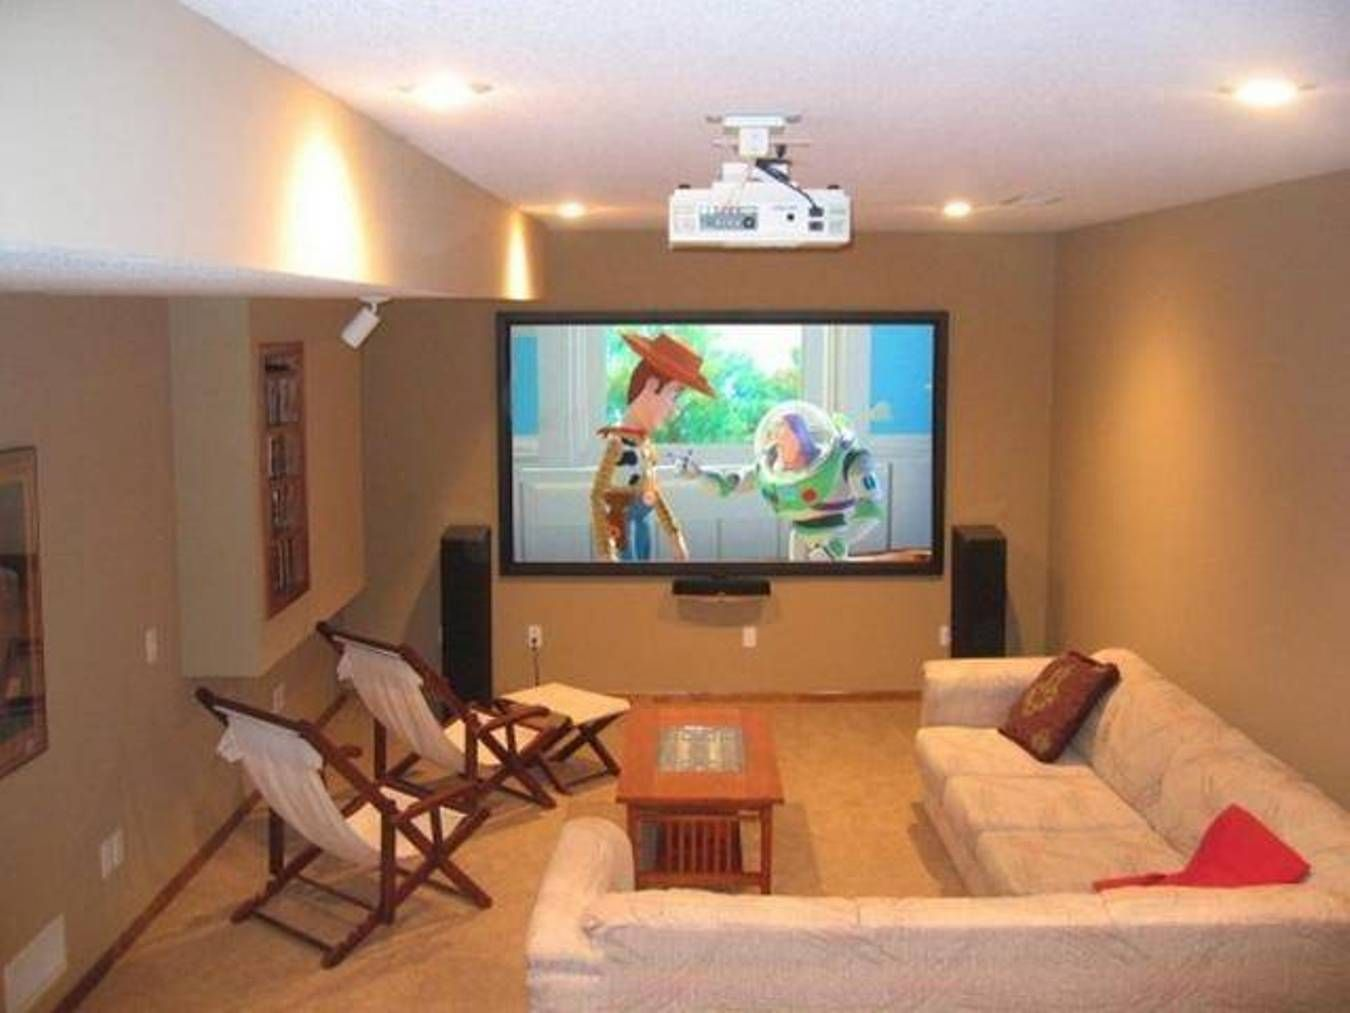 Small Home Theater Room Ideas  Home Design and Decor